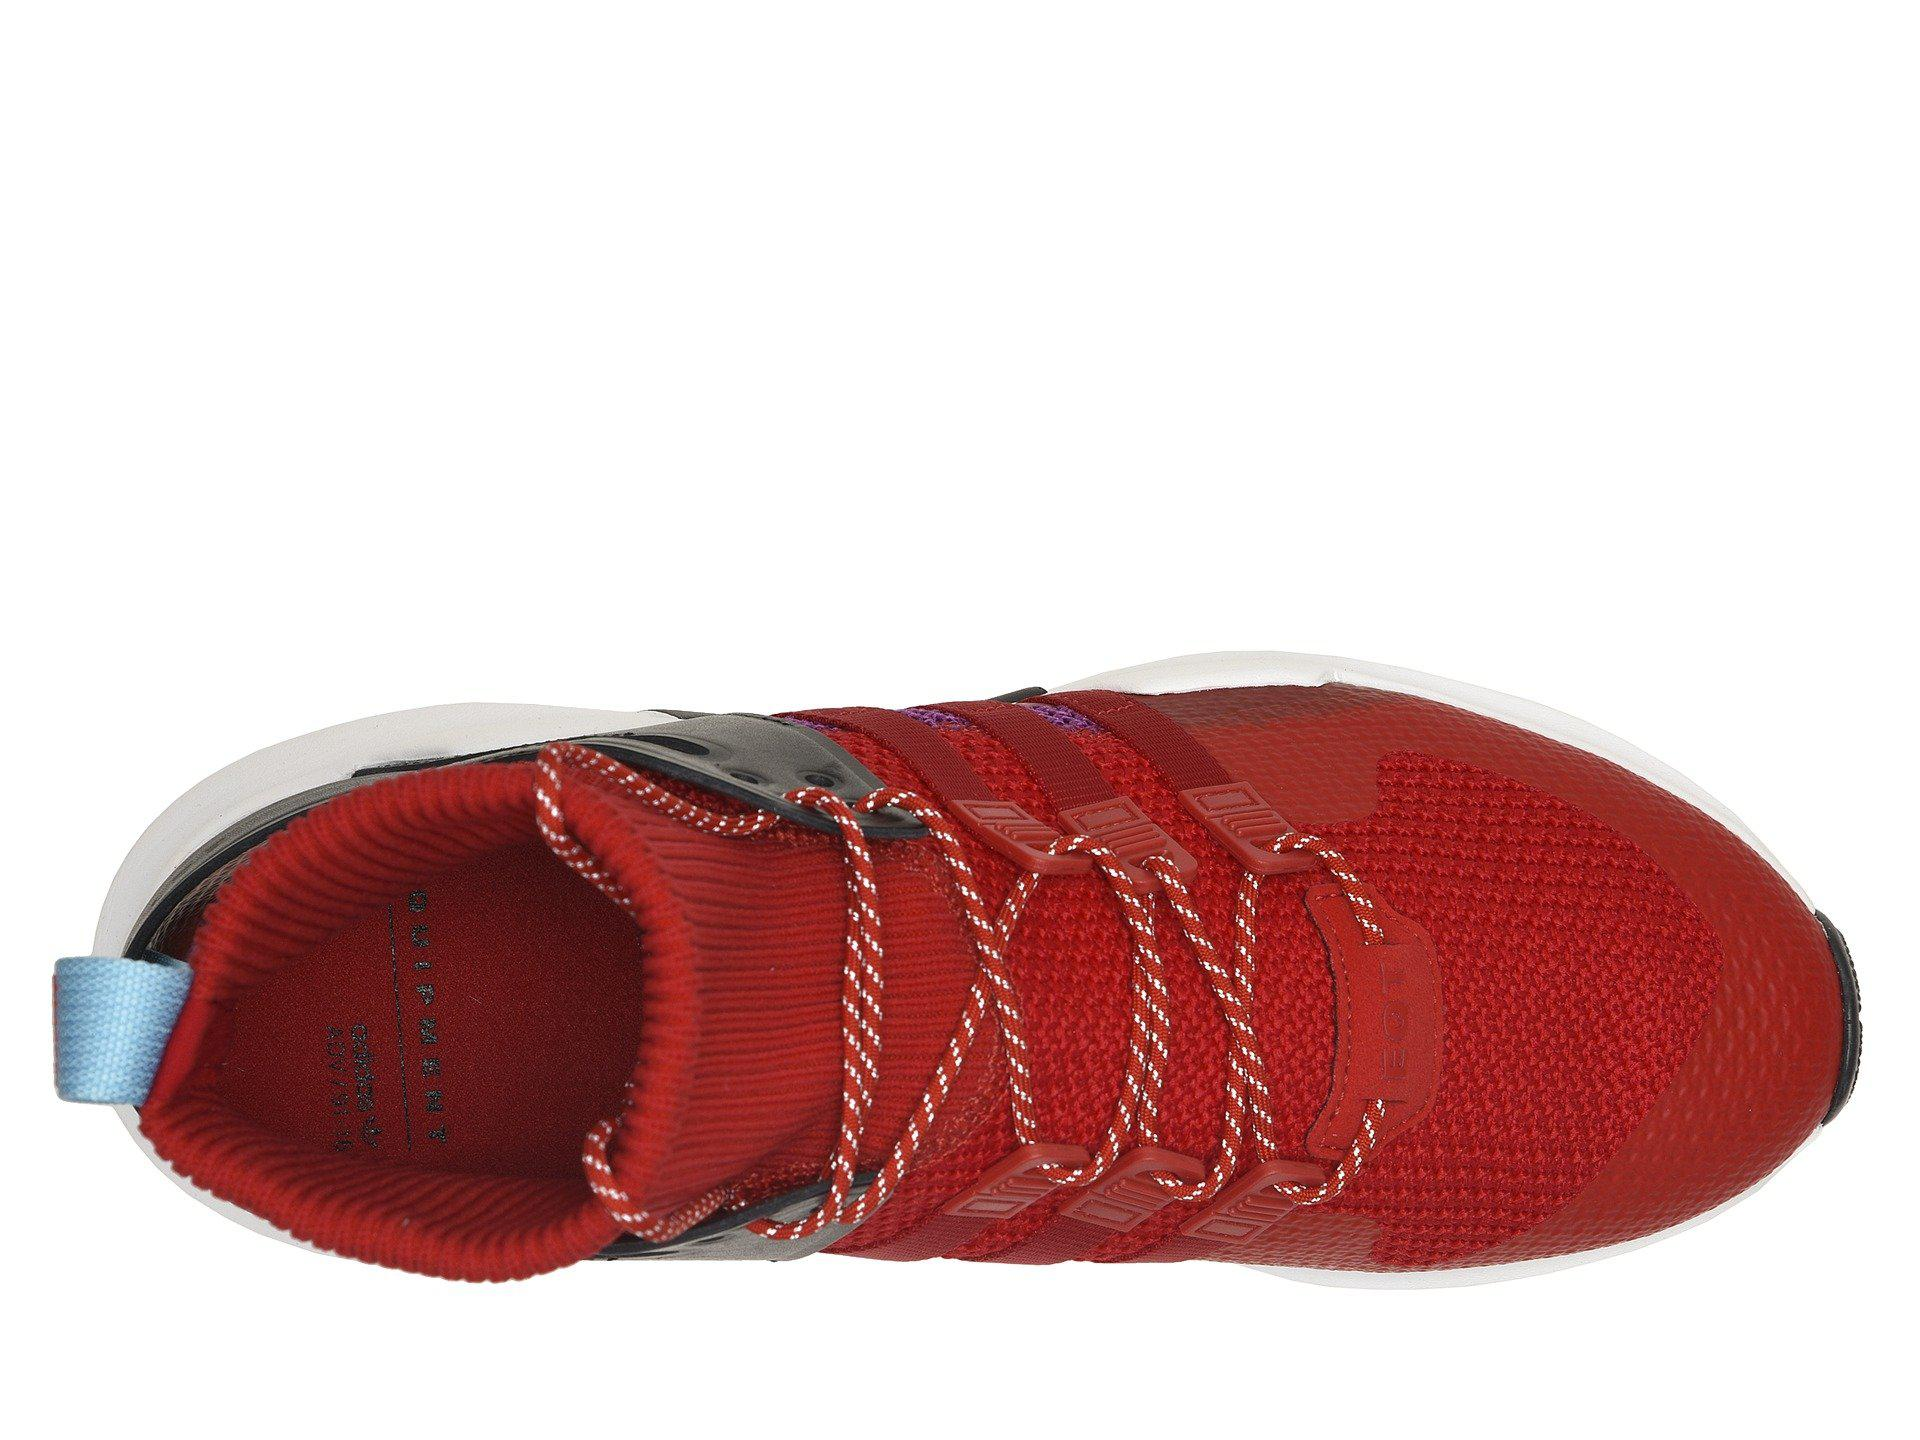 new concept 9a802 25bba Adidas - Red Eqt Support Adv Winter (gretwo,gretwo,ftwwht) Mens Shoes.  View fullscreen